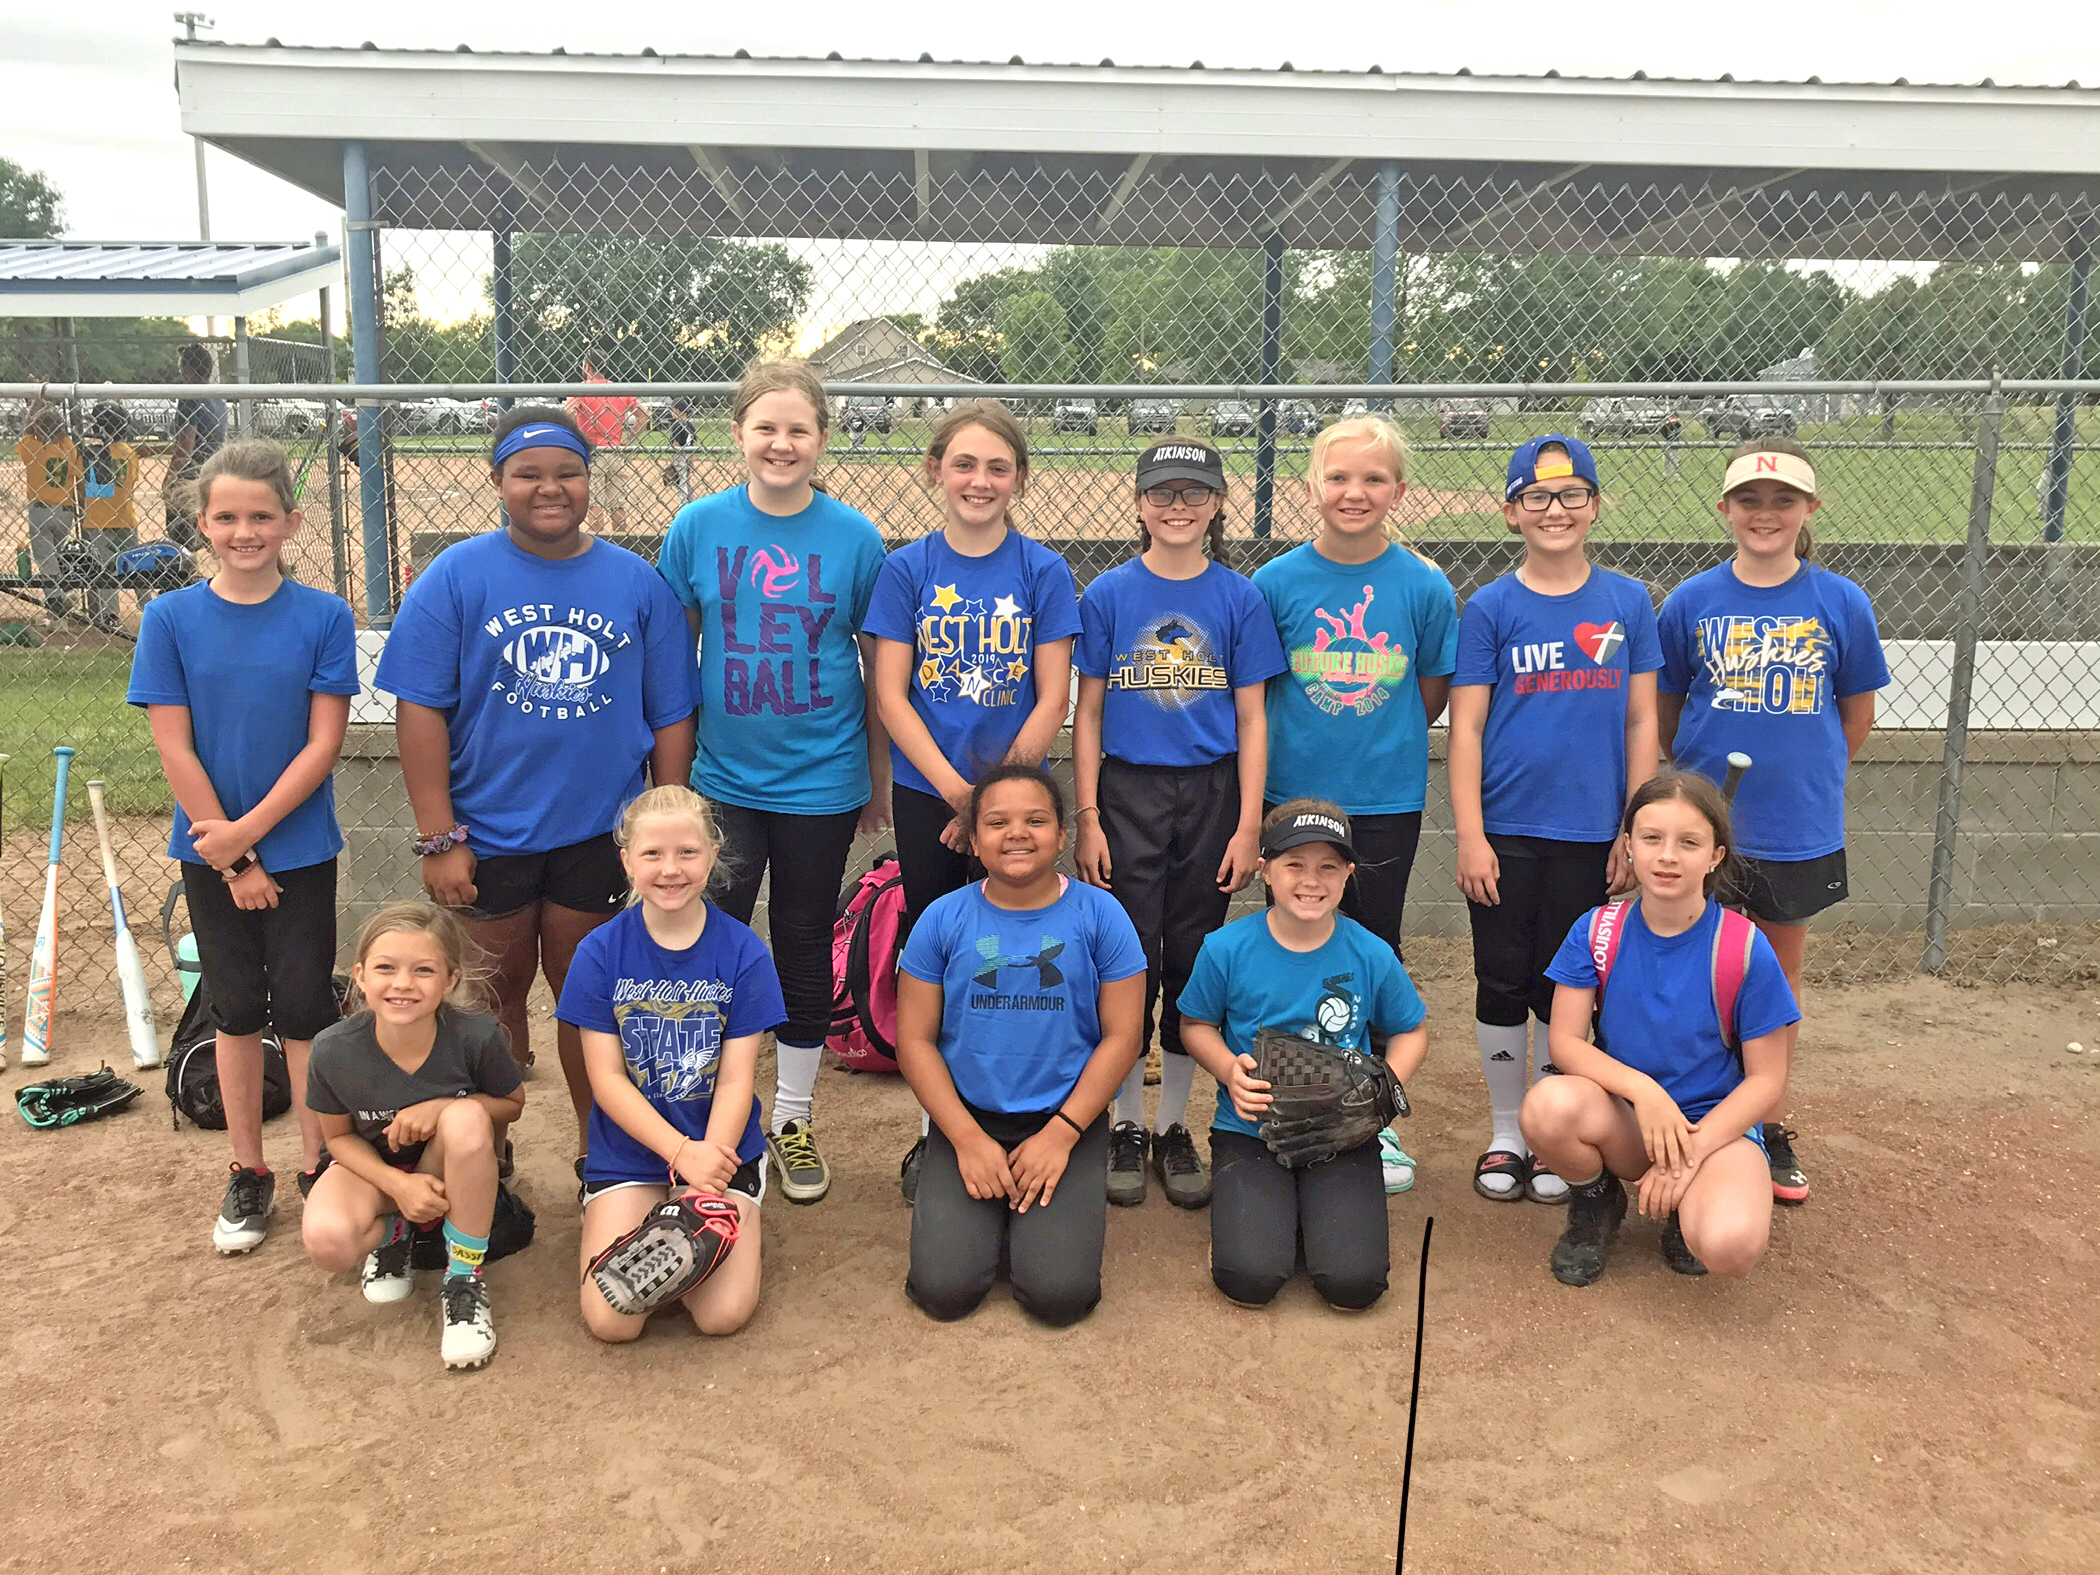 Members of the Atkinson 10 & Under girls' softball team were front, Peyton Skrdla, Eisley Mlady, Shea Jackson, Landri Nemetz, and Olivia Brown; back, Marley Intelkofer, Carleigh Jackson, Taylor Schaaf, Jewel Beckwith, Leah Pistulka, Hannah Hooey, Jordyn Osborne, and Reece Hoffman.	Photo courtesy Kami Hooey